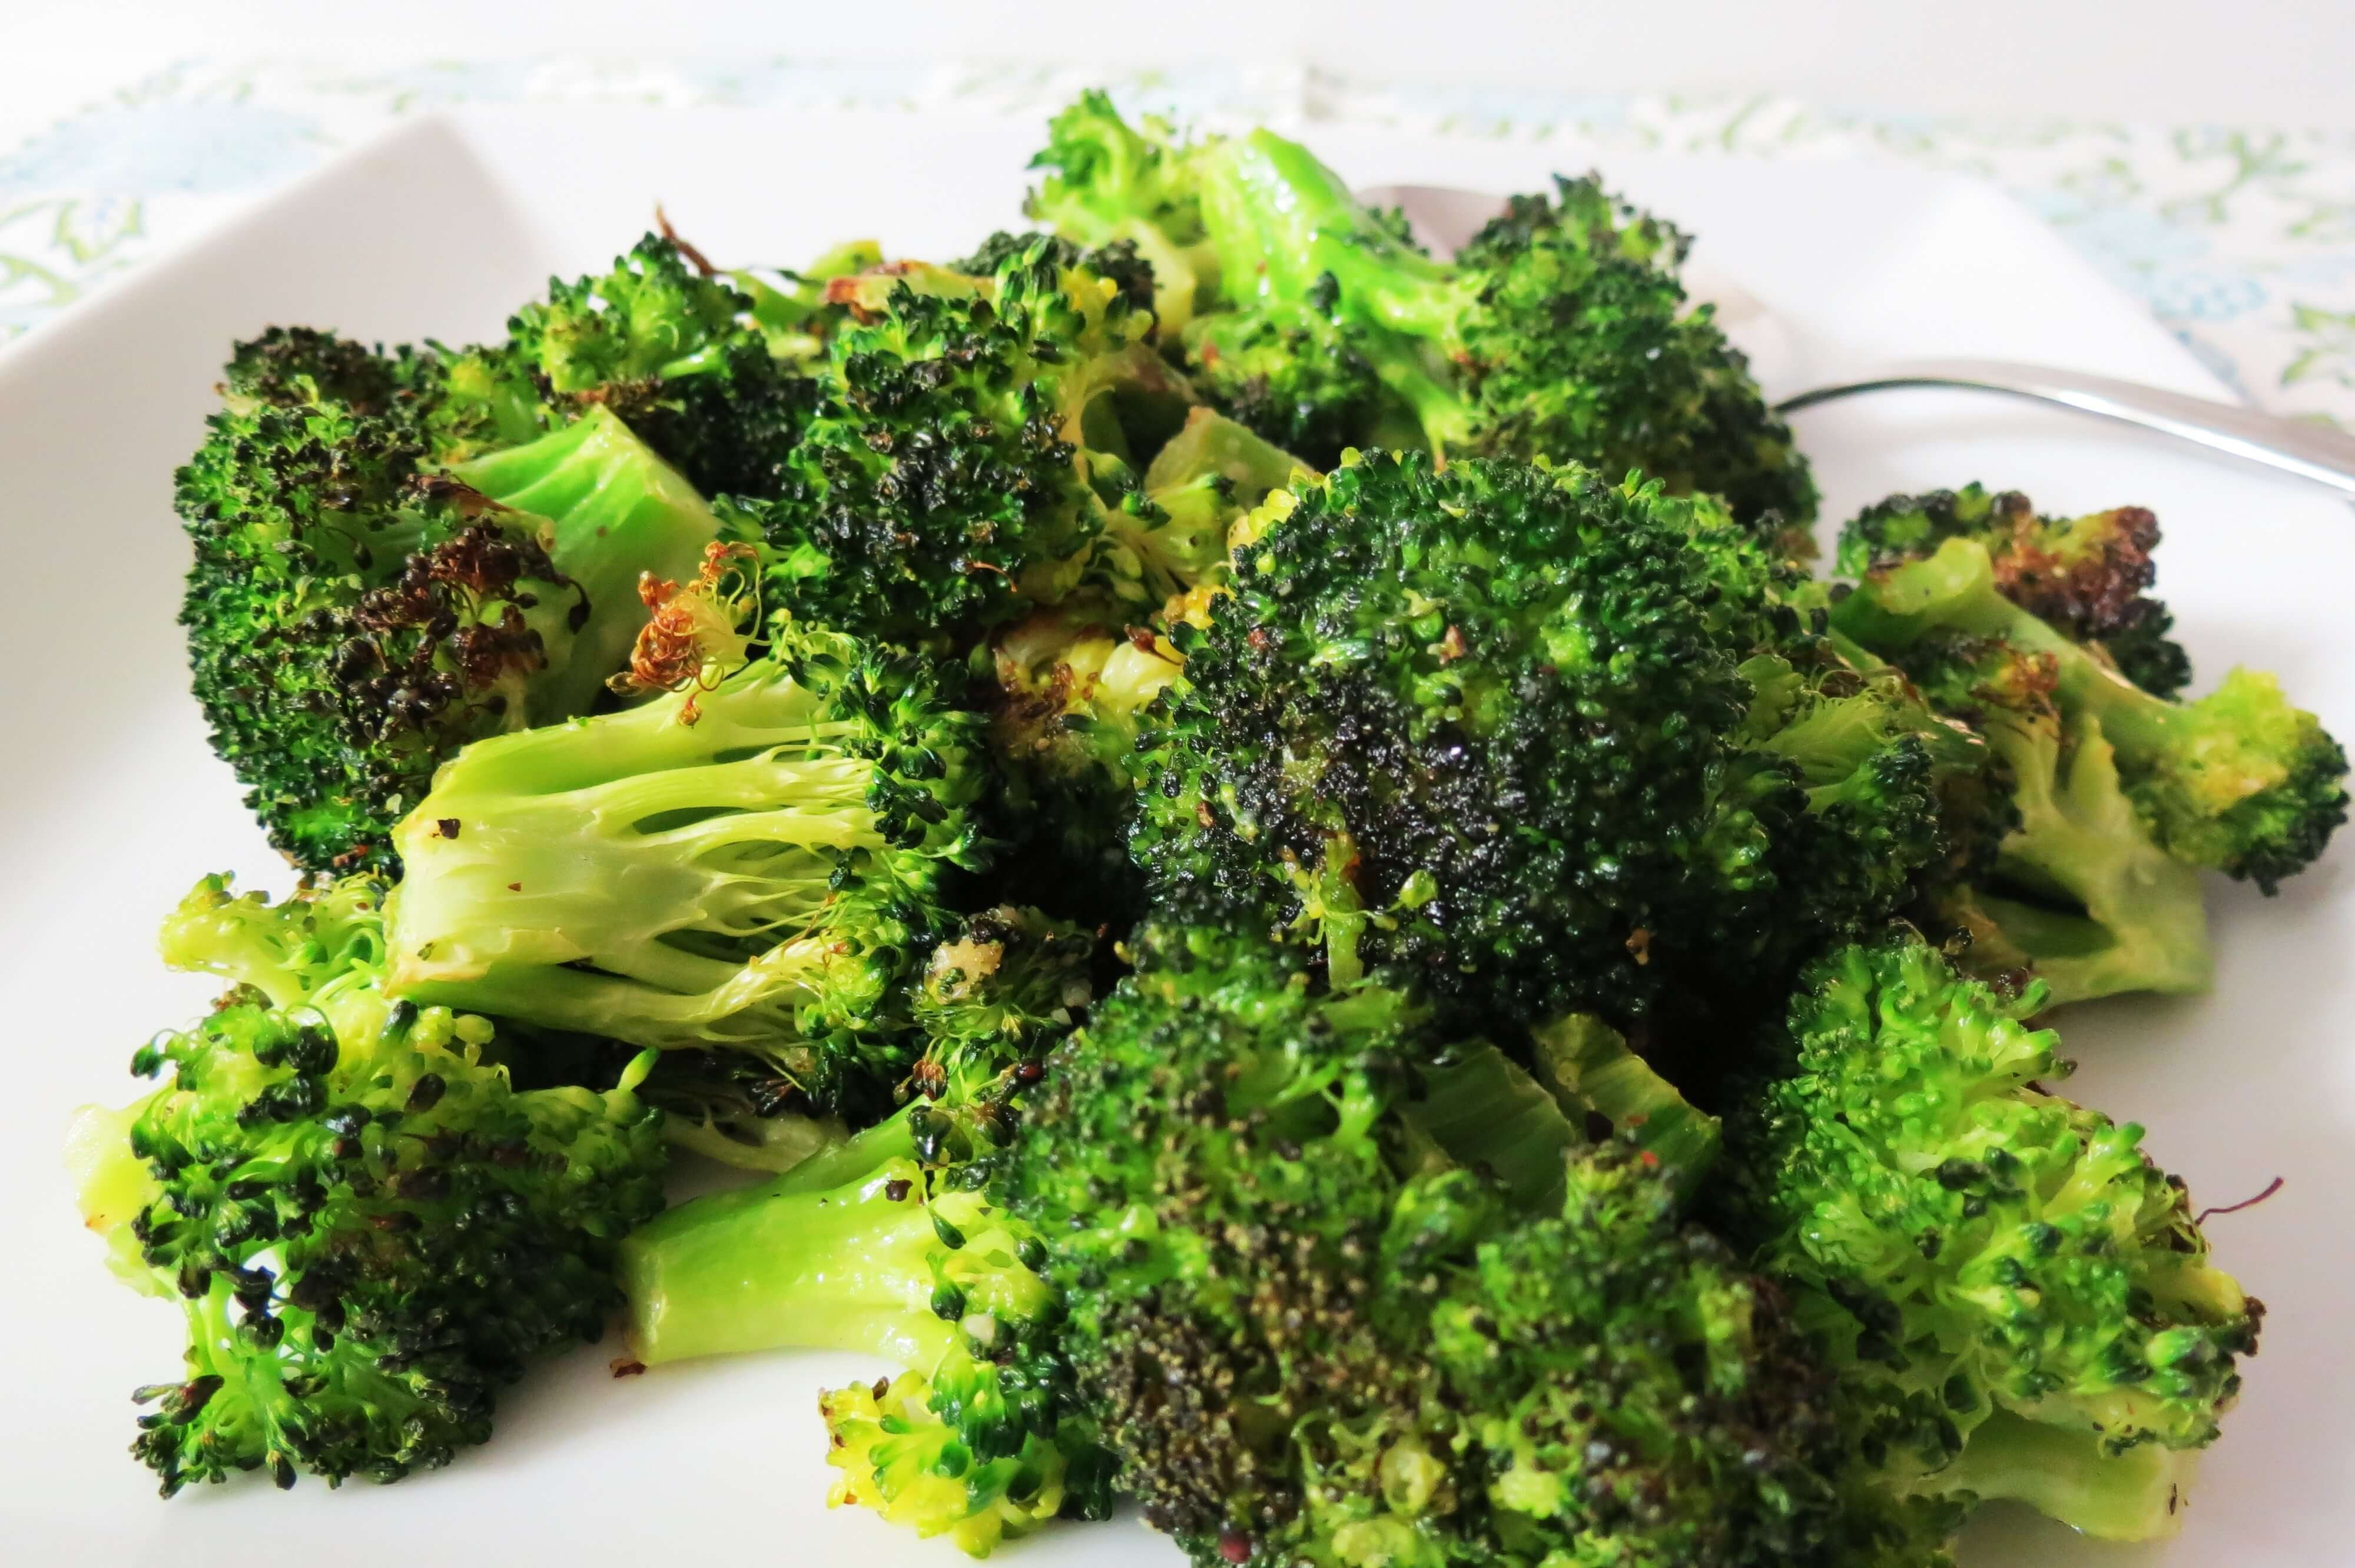 Broccoli Pictures